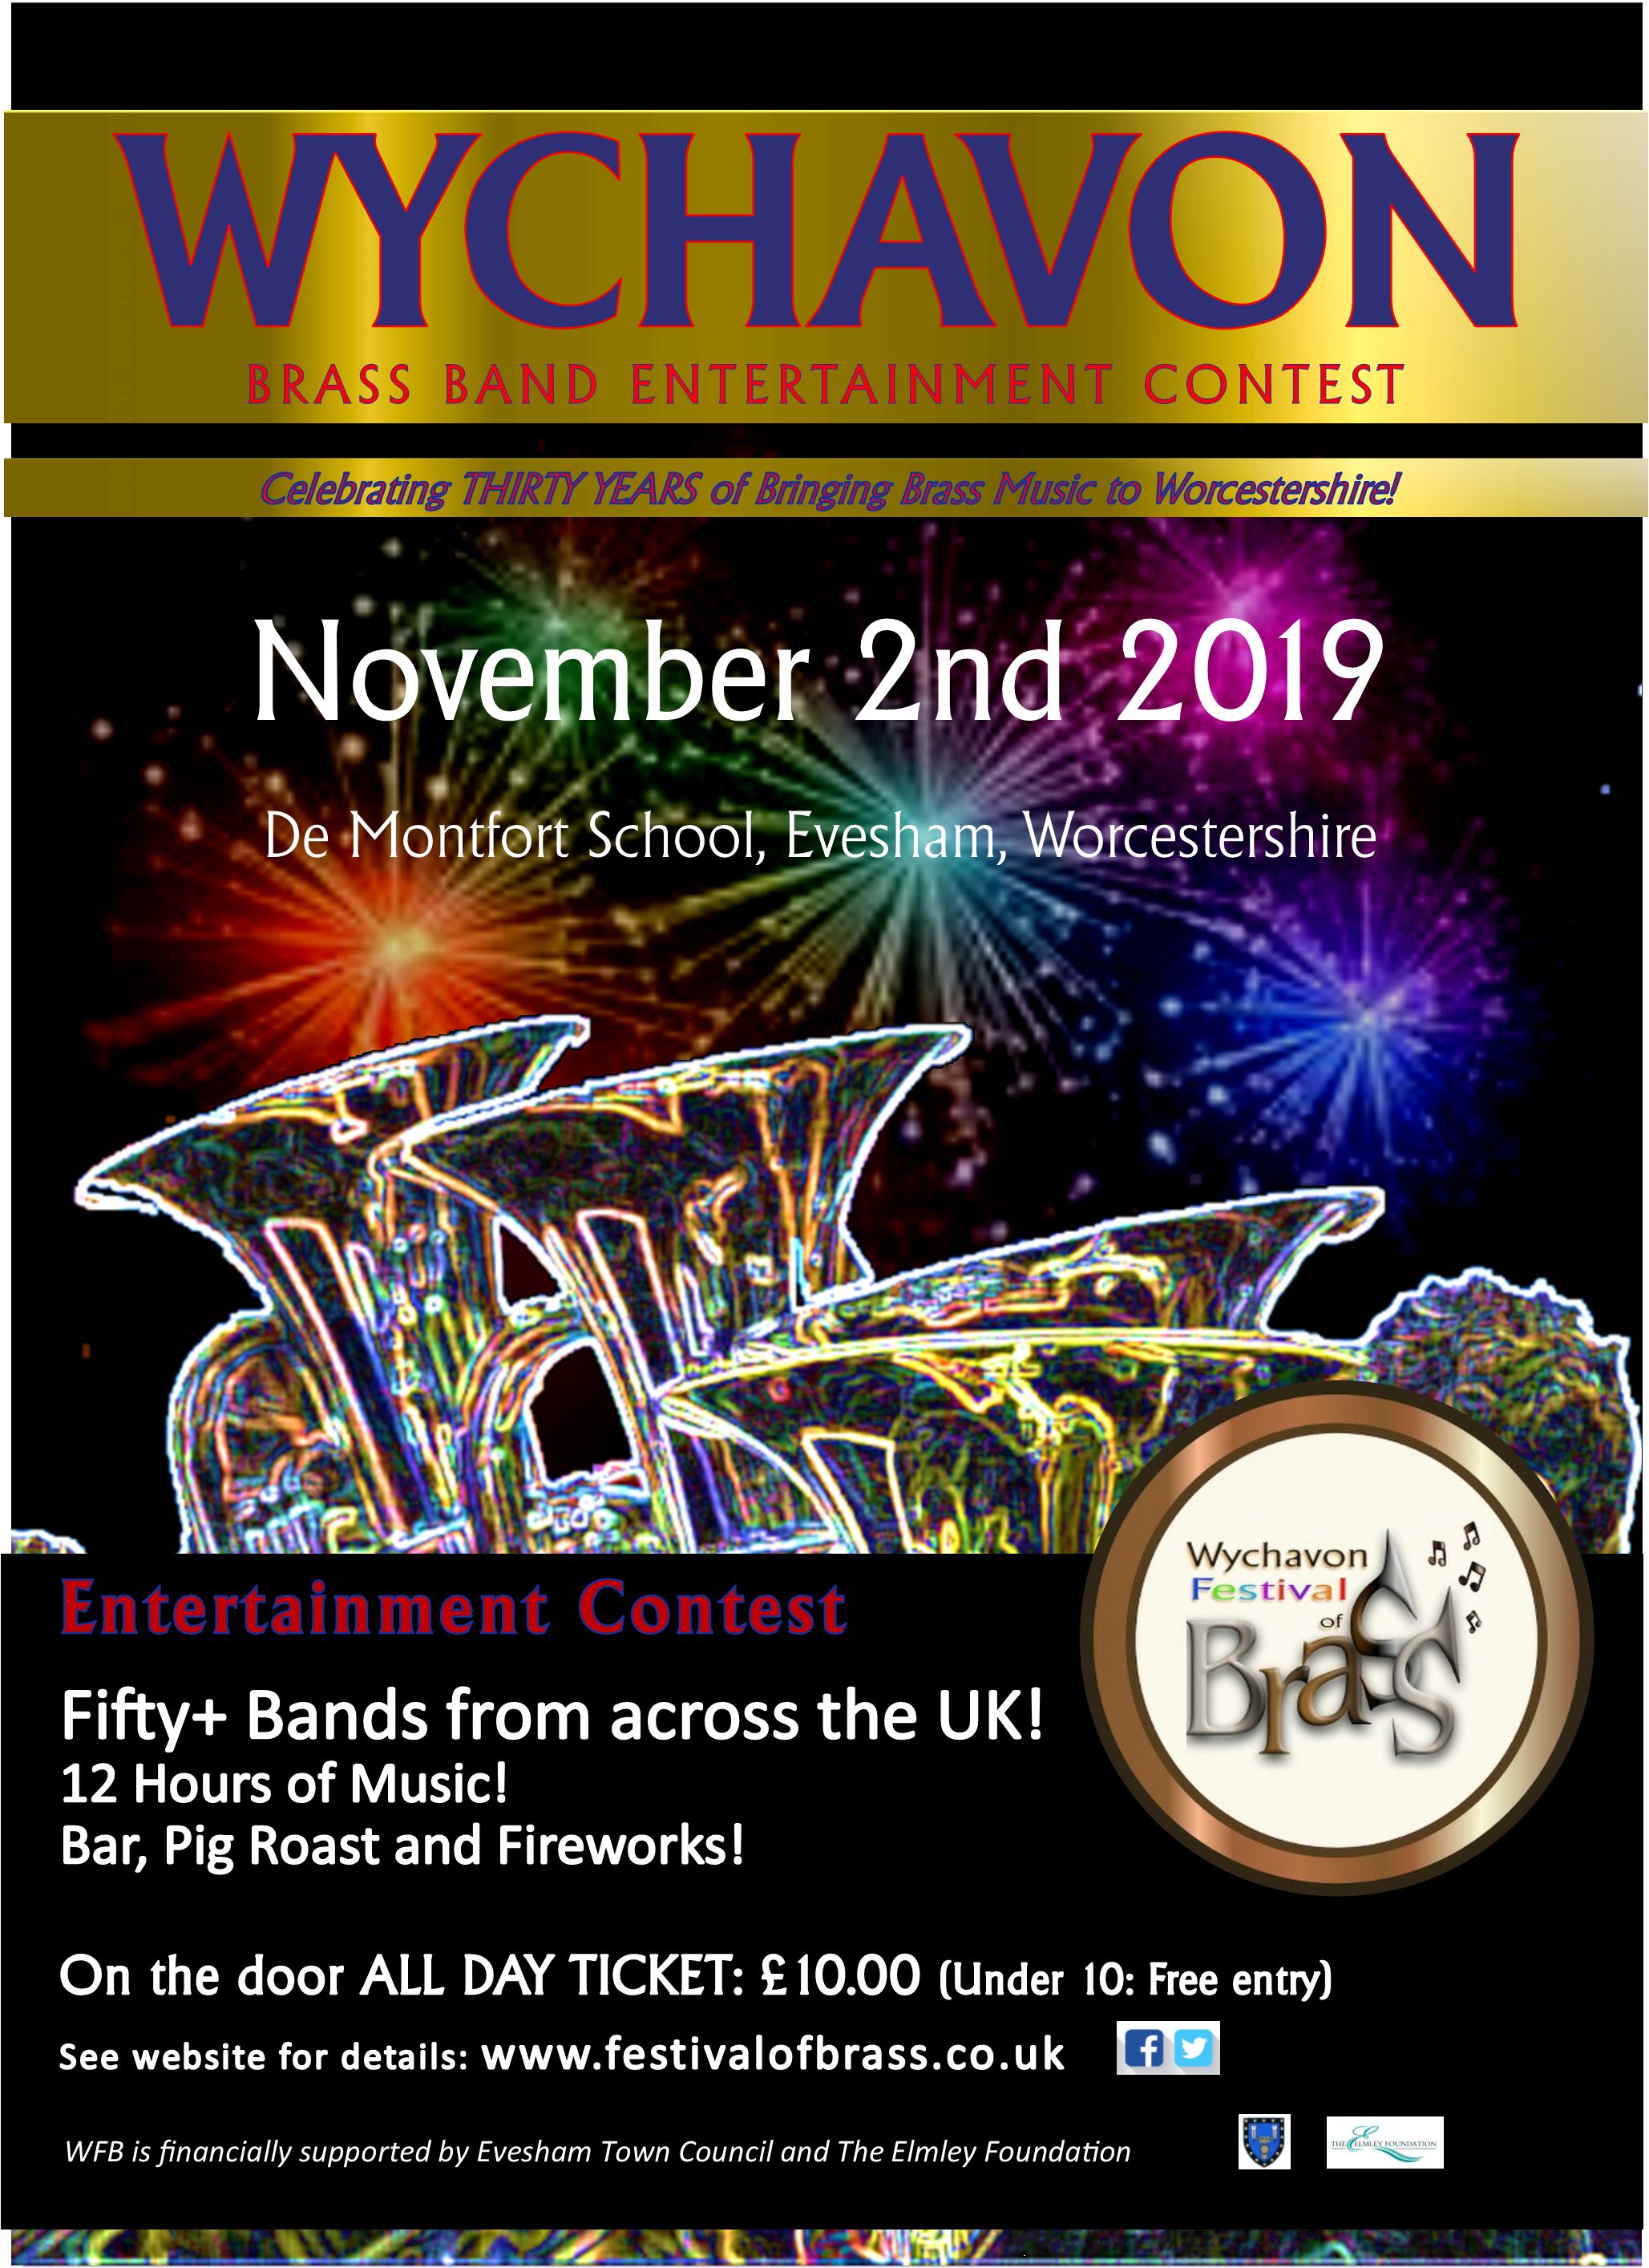 Wychavon Festival of Brass Entertainment Contest